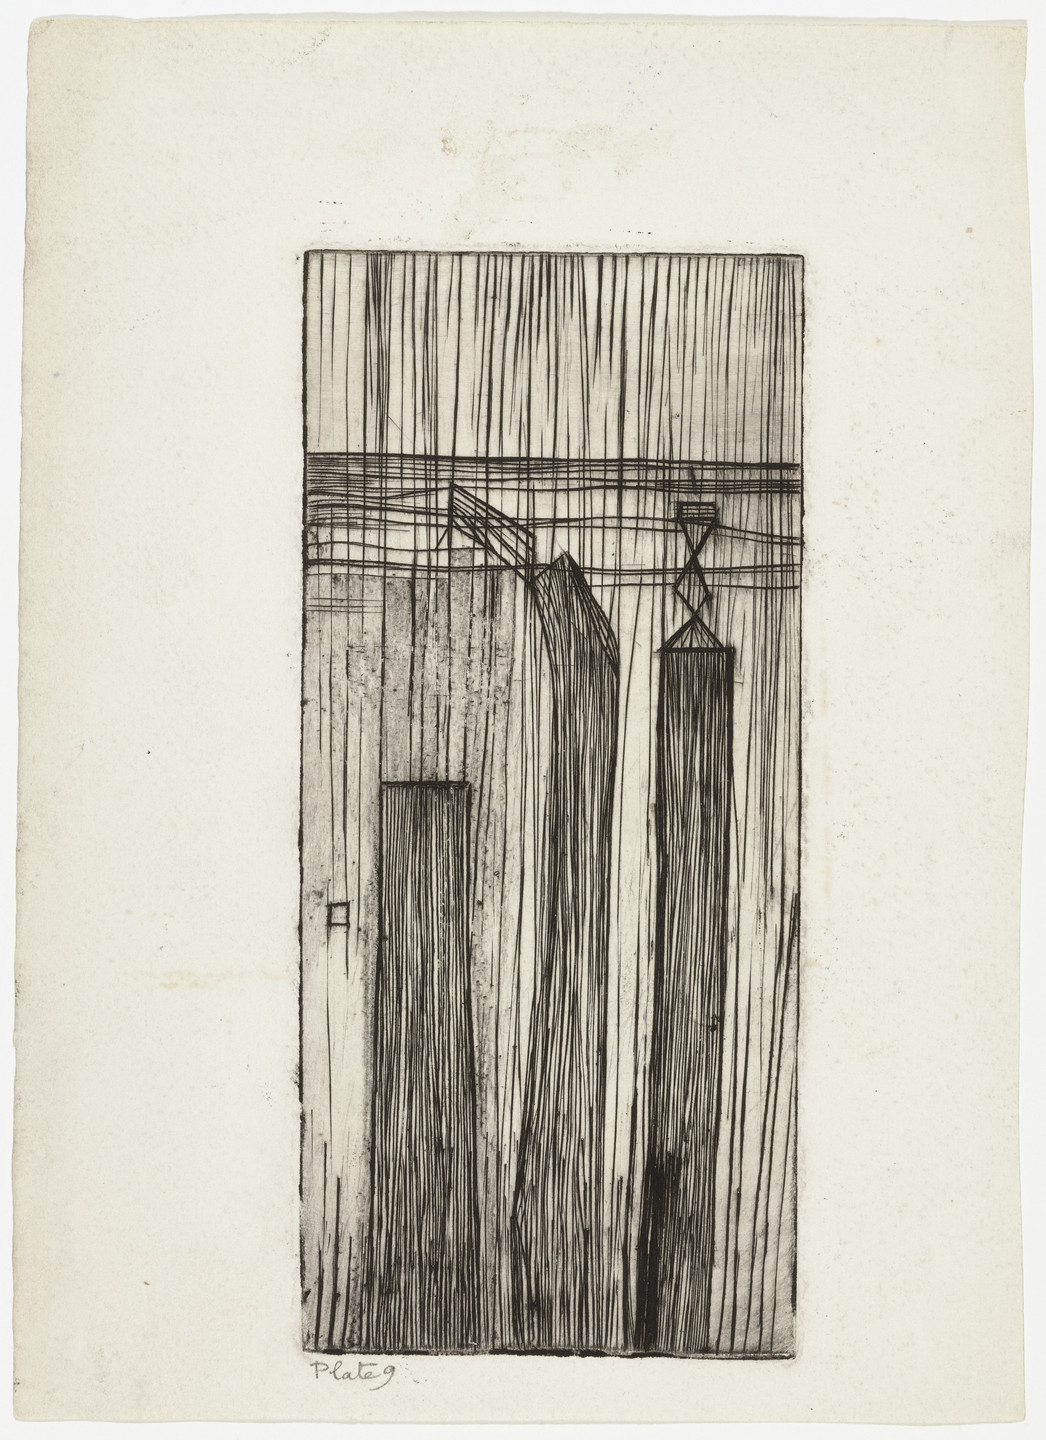 Louise Bourgeois. Plate 9 of 9, from the illustrated book, He Disappeared into Complete Silence. 1946-1947